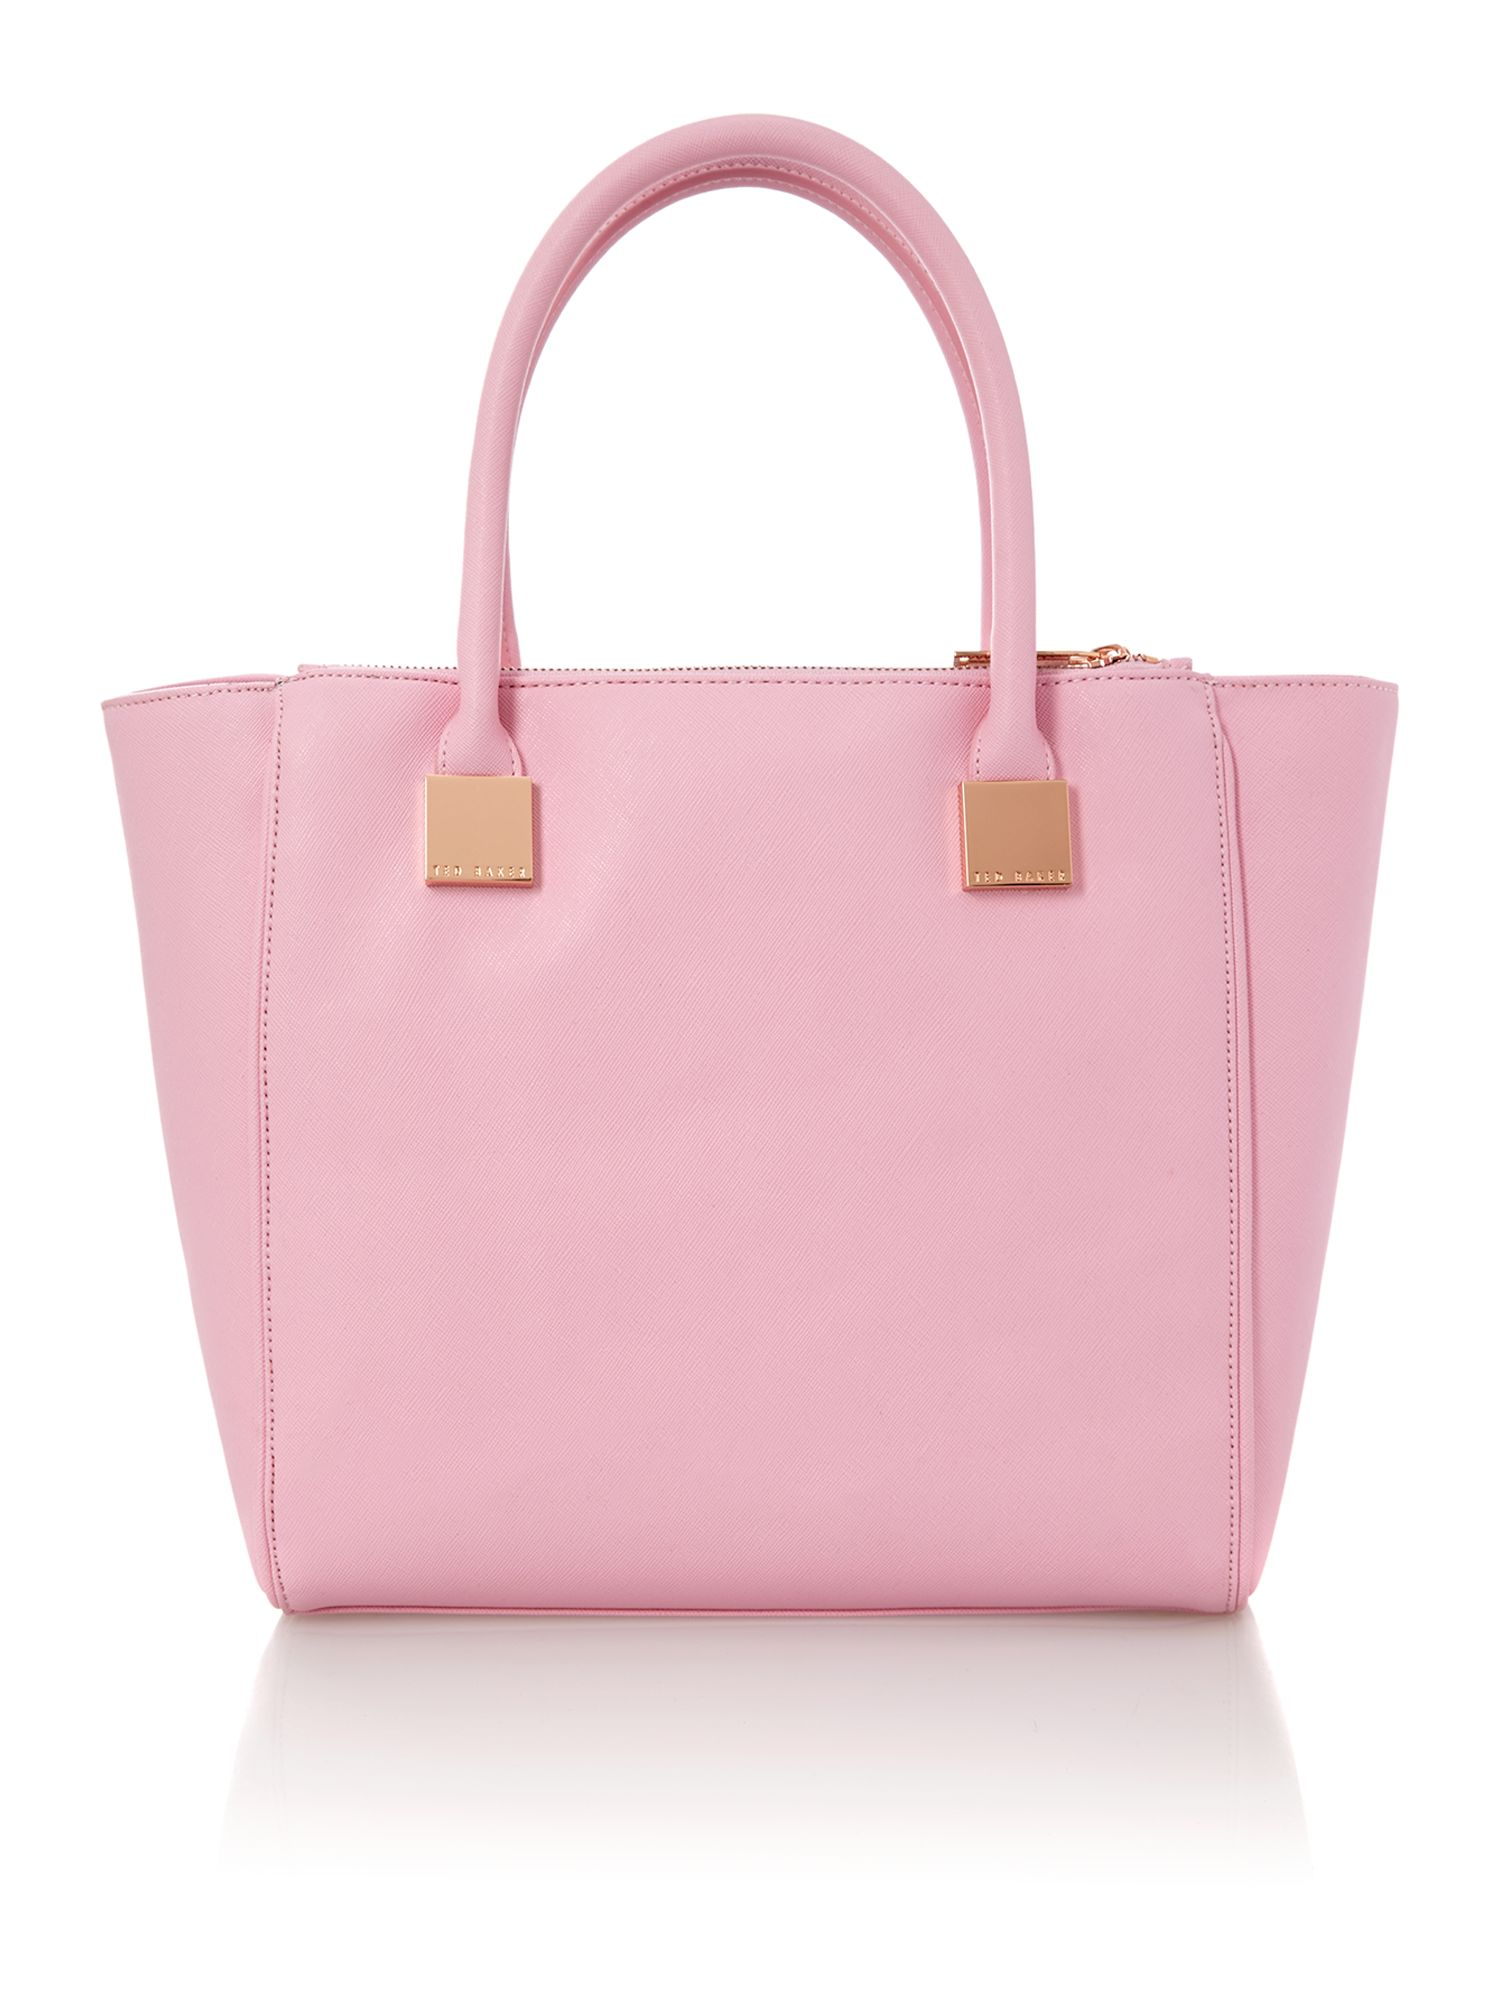 Pink medium saffiano tote bag